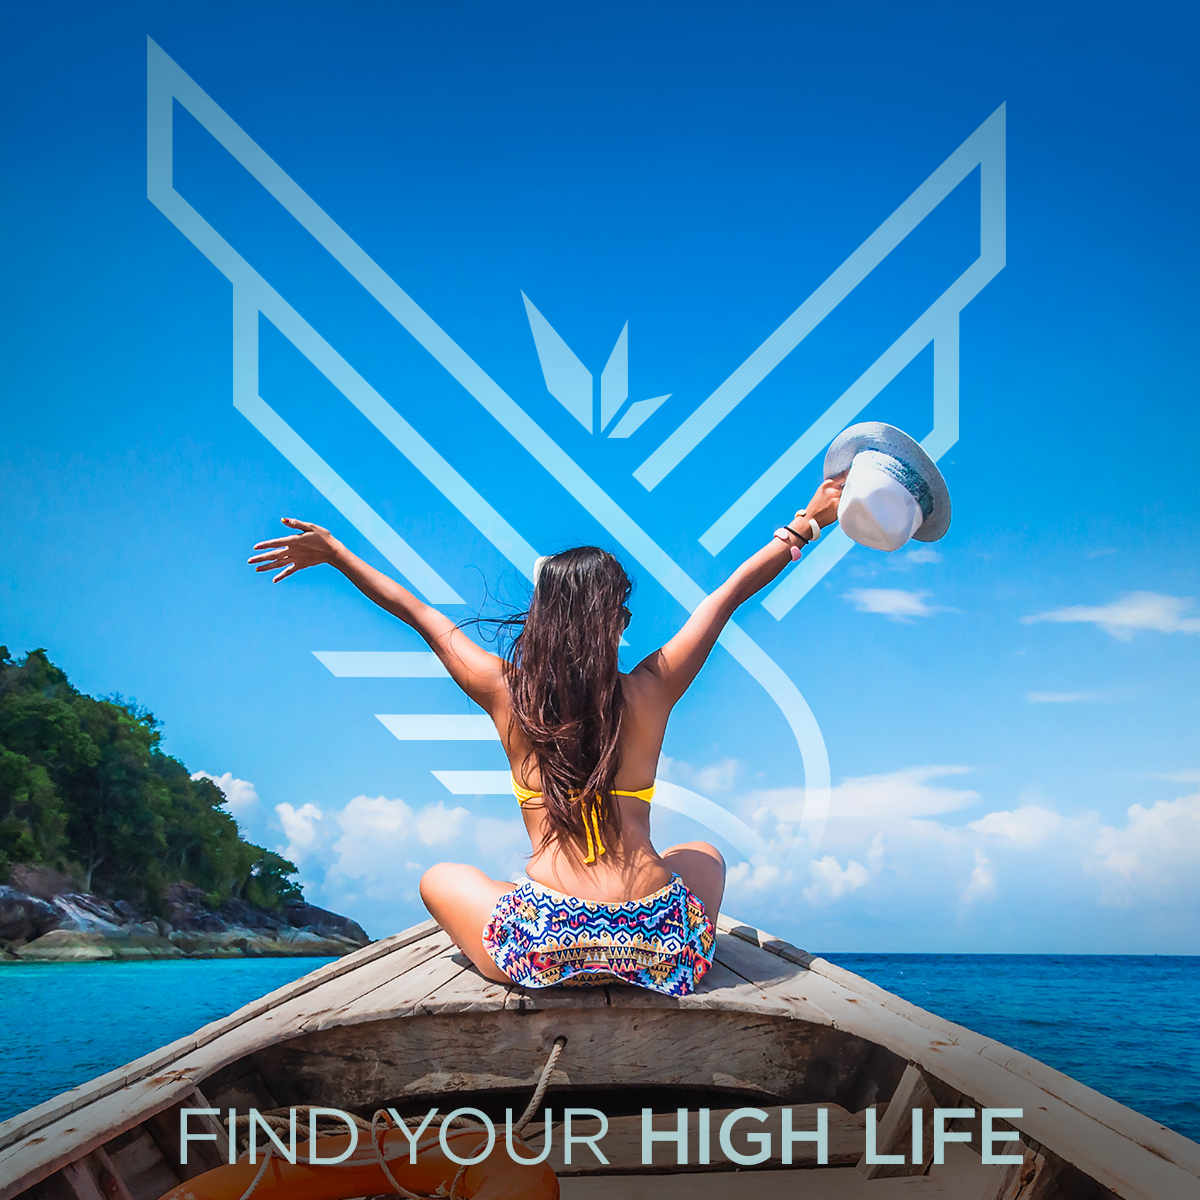 High Life Discount Travel